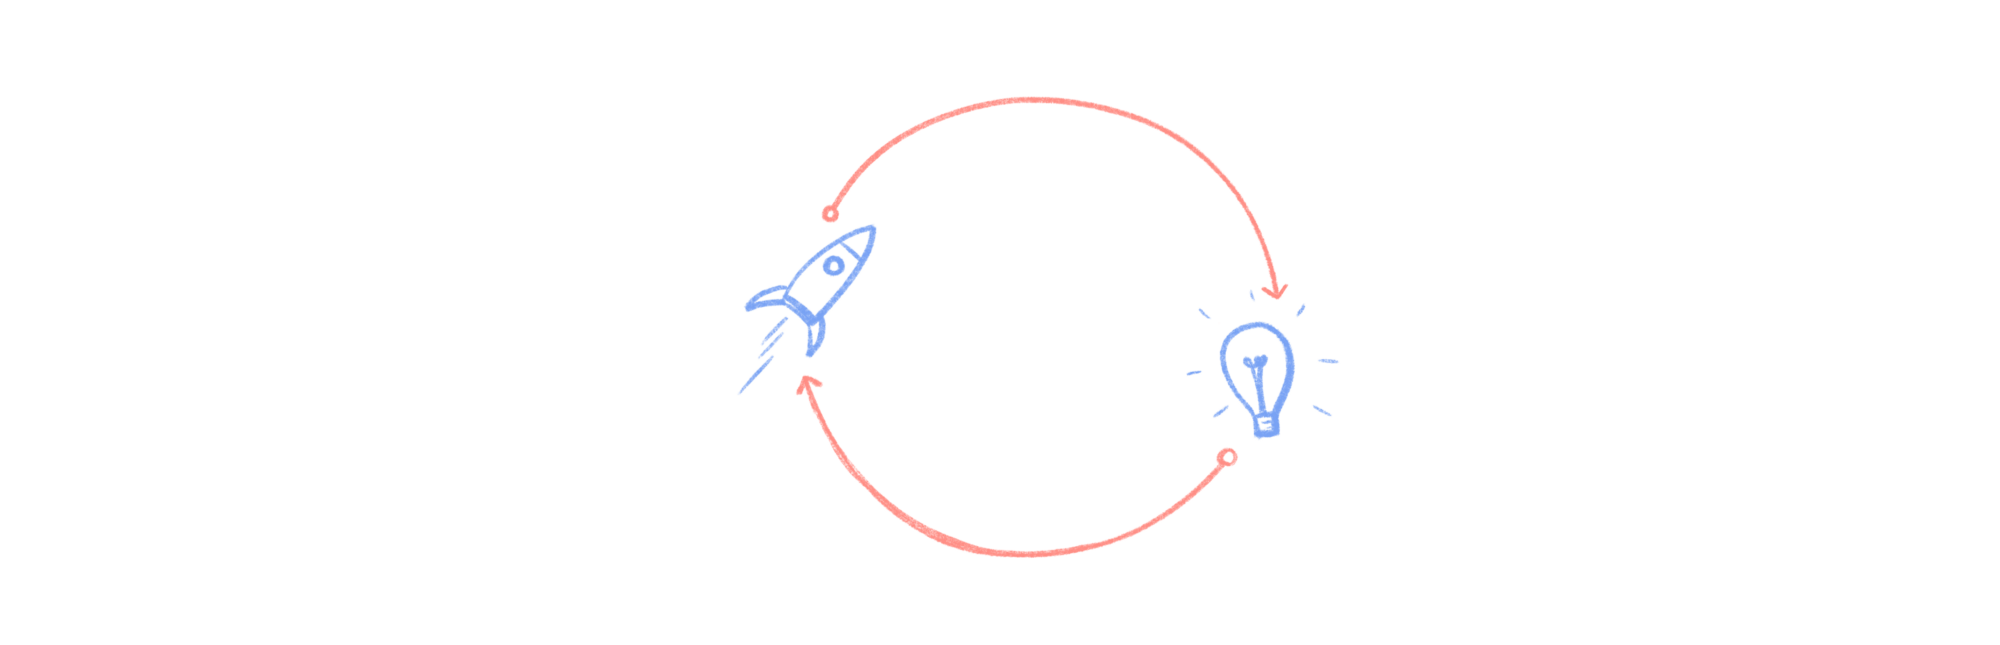 Cycle of launching and learning